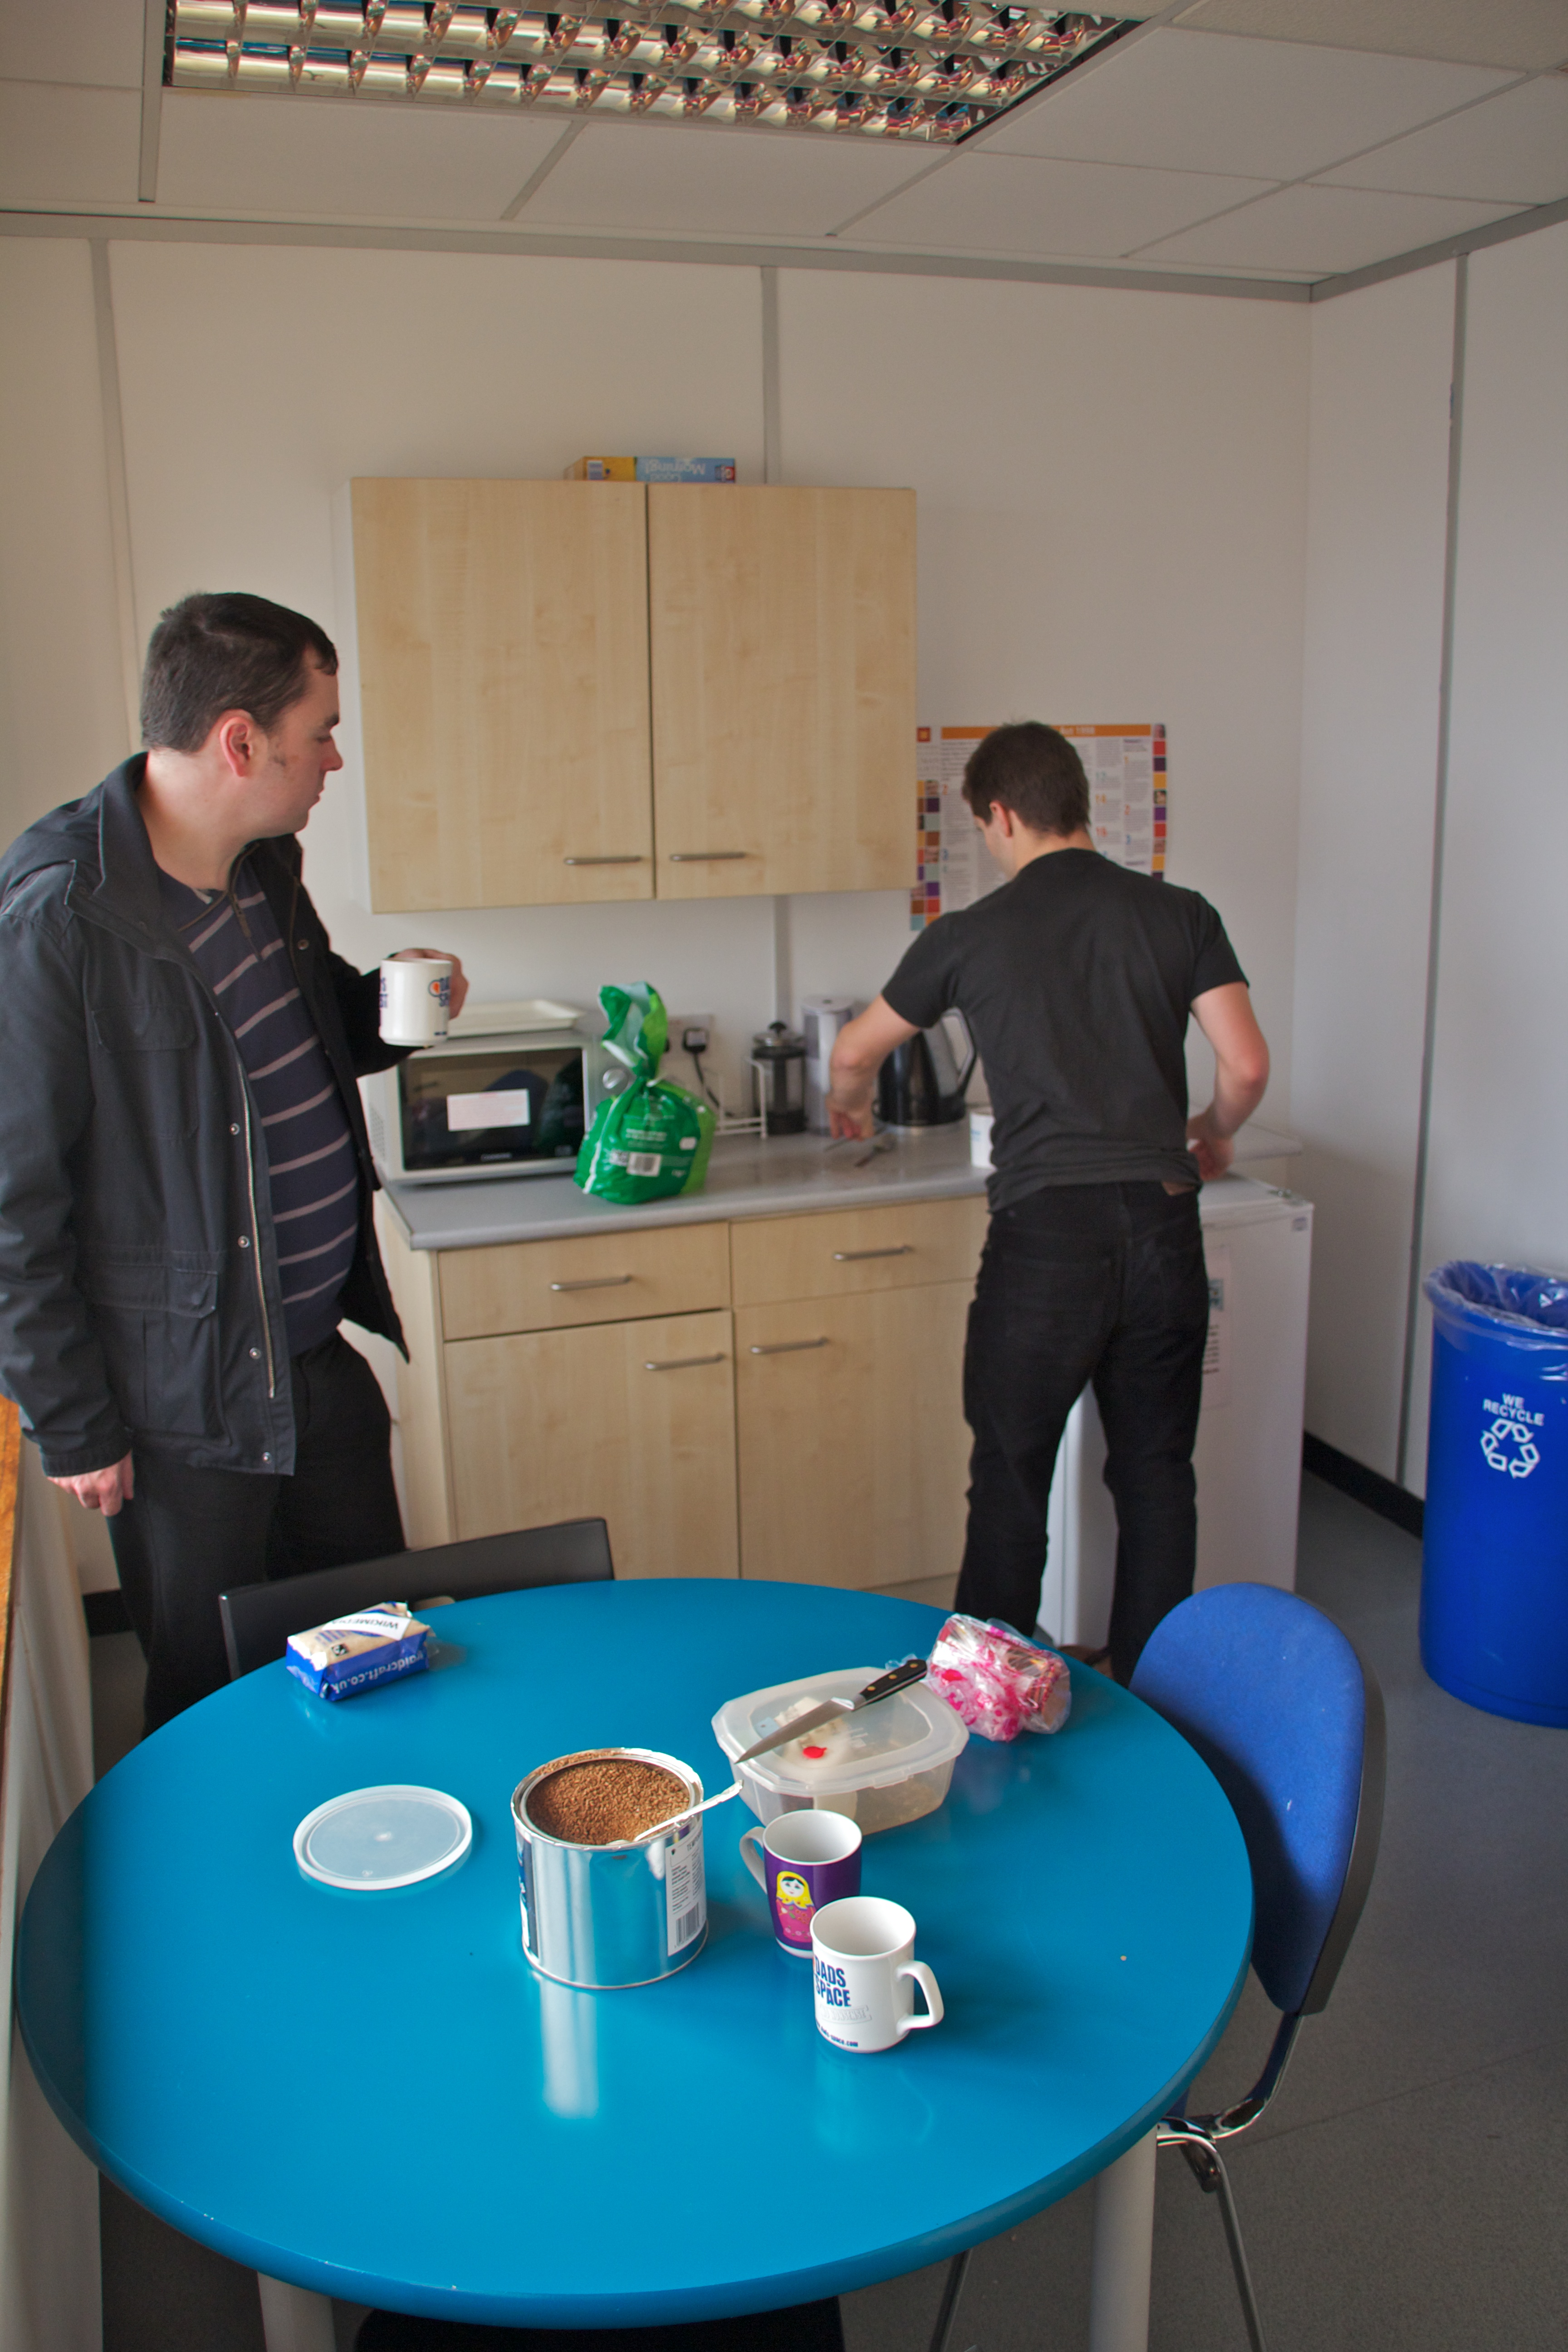 Office Kitchen How Having A Kitchen In Your Office Creates A Better Culture Among